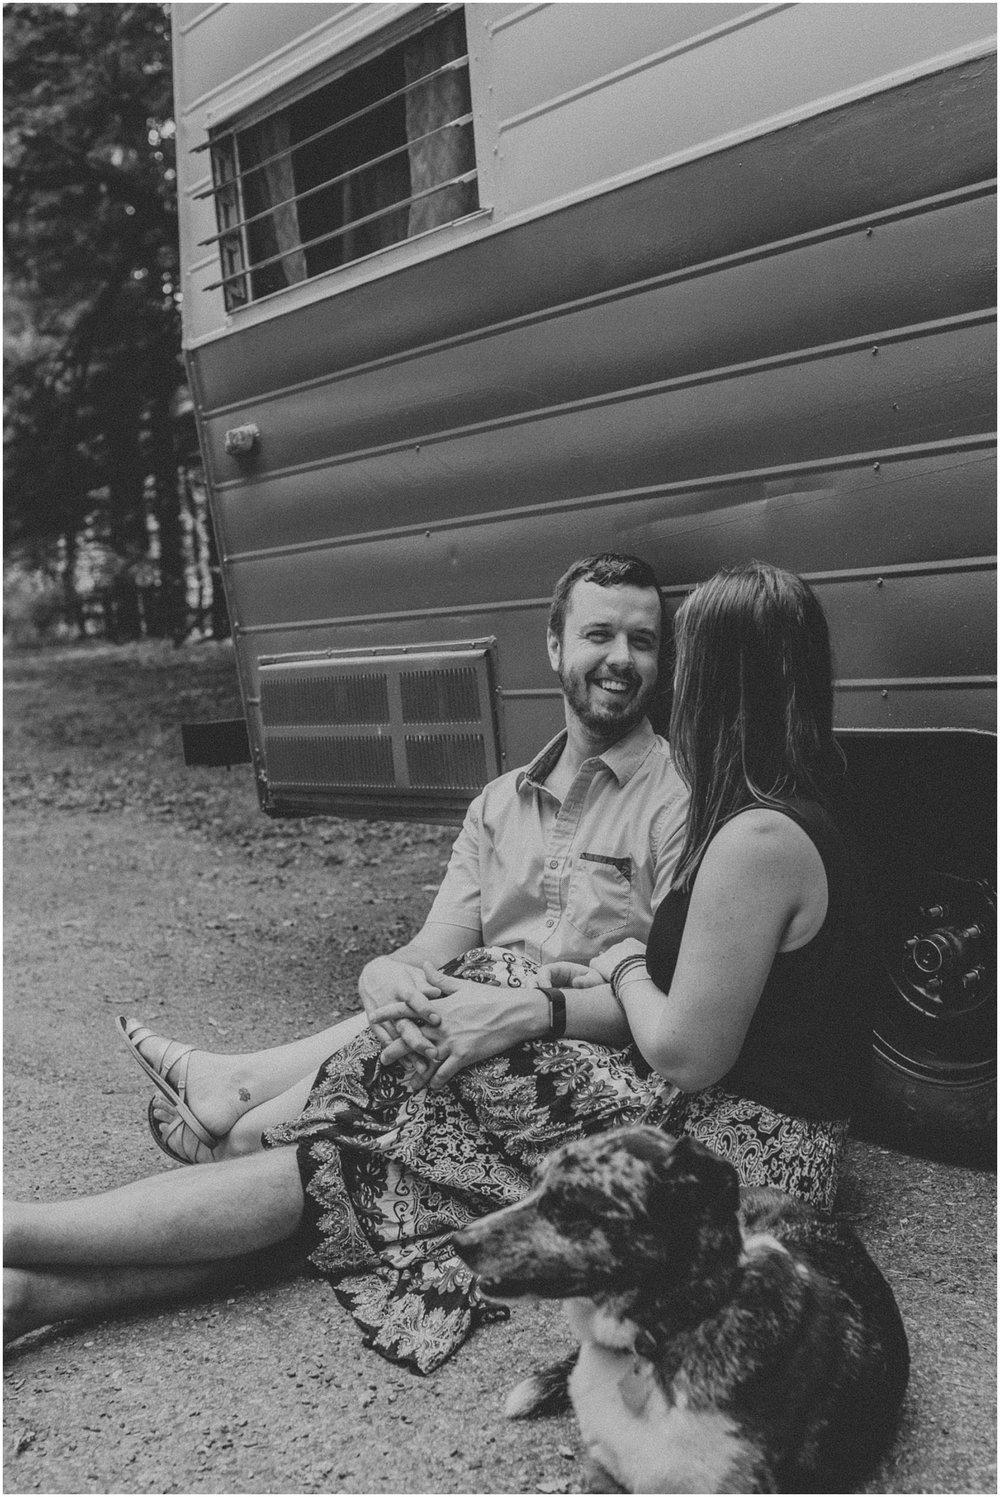 lifestyle-anniversary-engagement-photo session-rv-camping-road trip-vintage trailer-camping-outdoor photos_0243.jpg